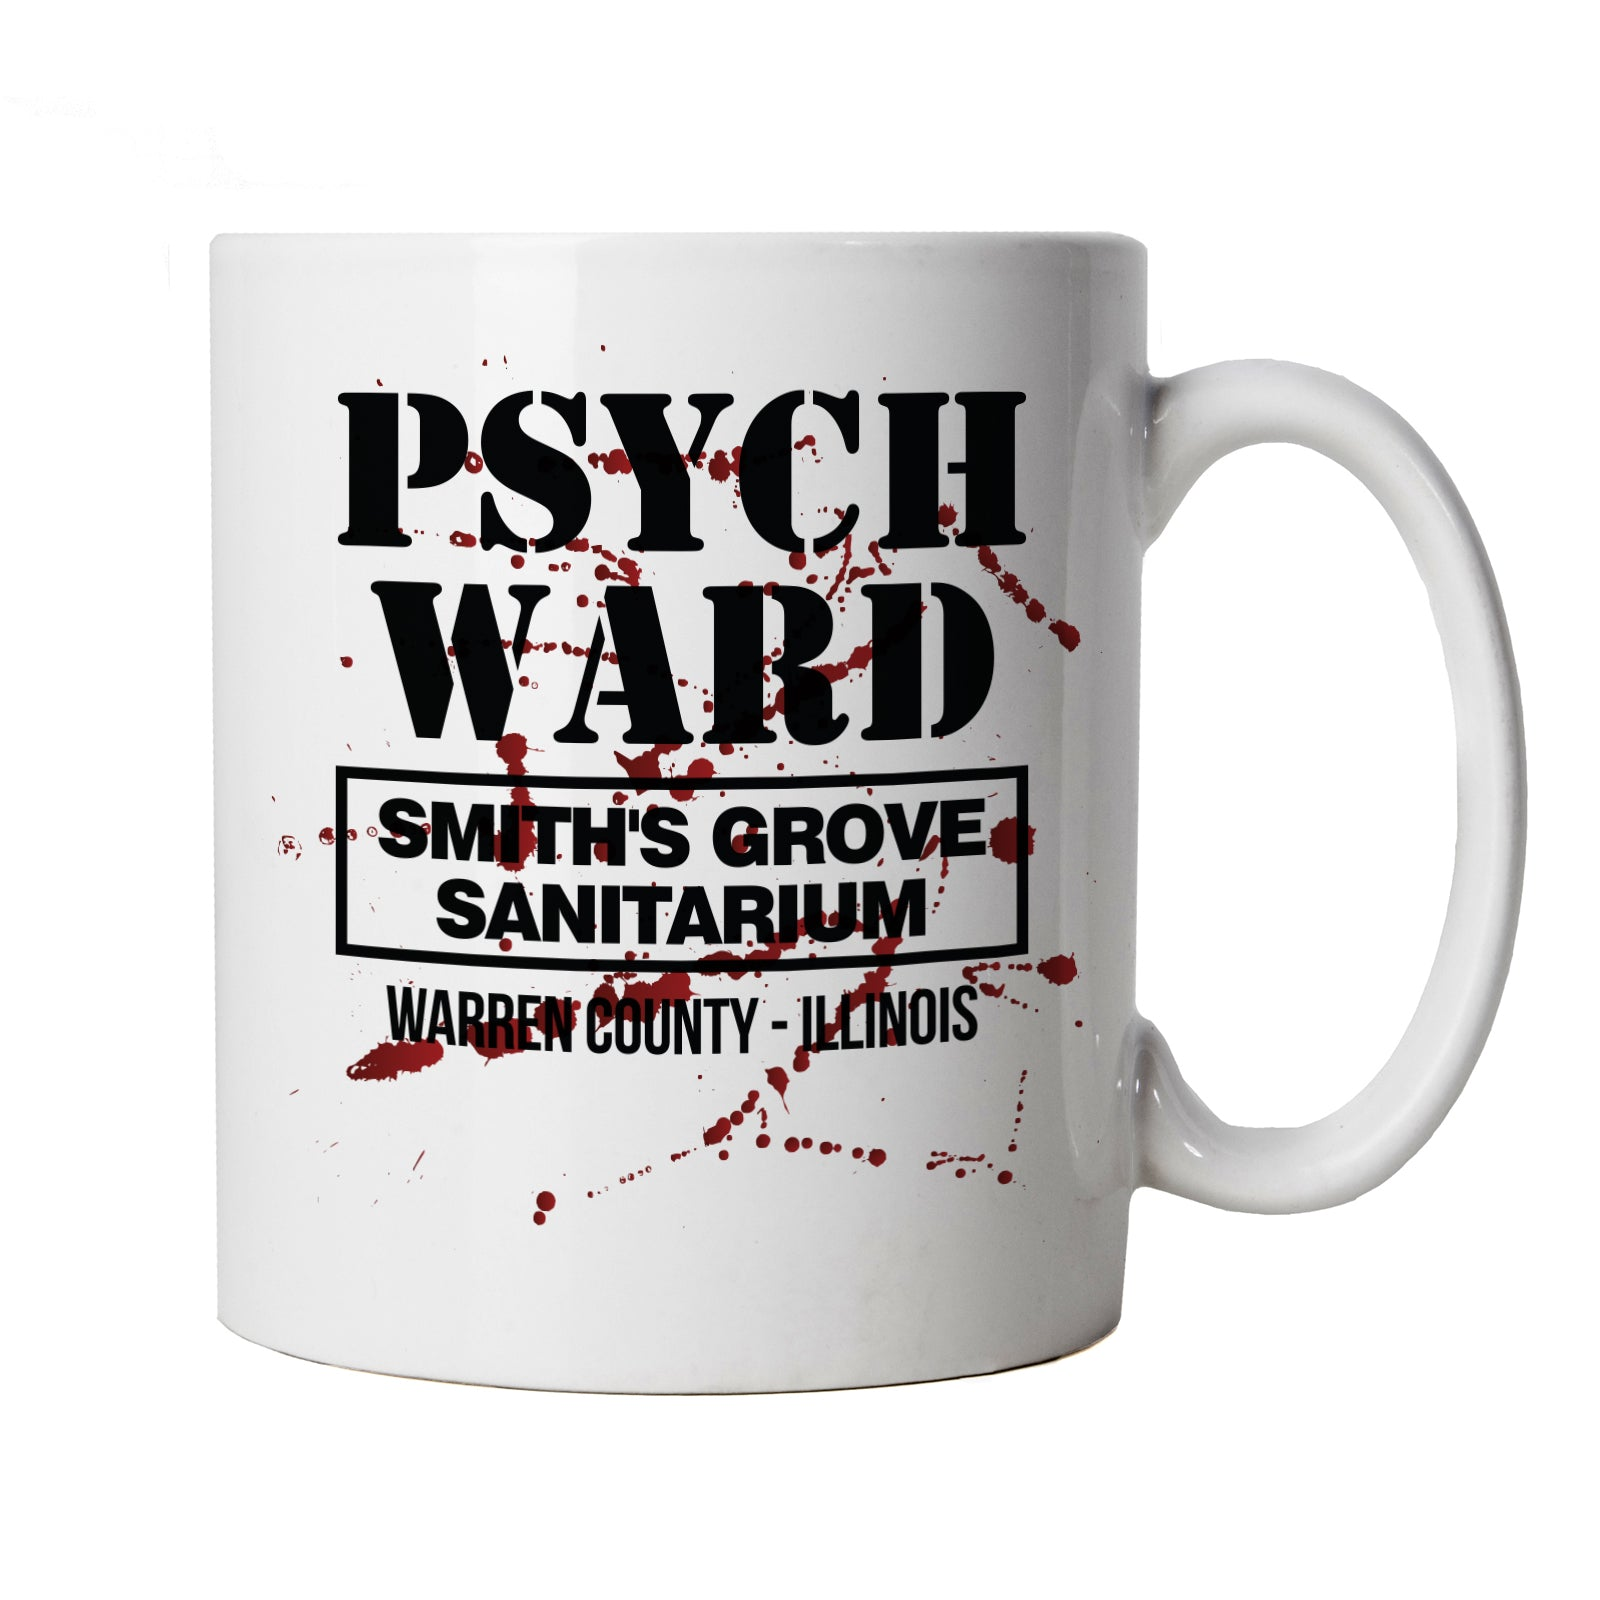 Smiths Grove Sanitarium Mug | Texas Elm Friday Nightmare Halloween 13th Street | Action Adventure Horror Sci-Fi Thriller Comedy Spy | TV & Movie Cup Gift